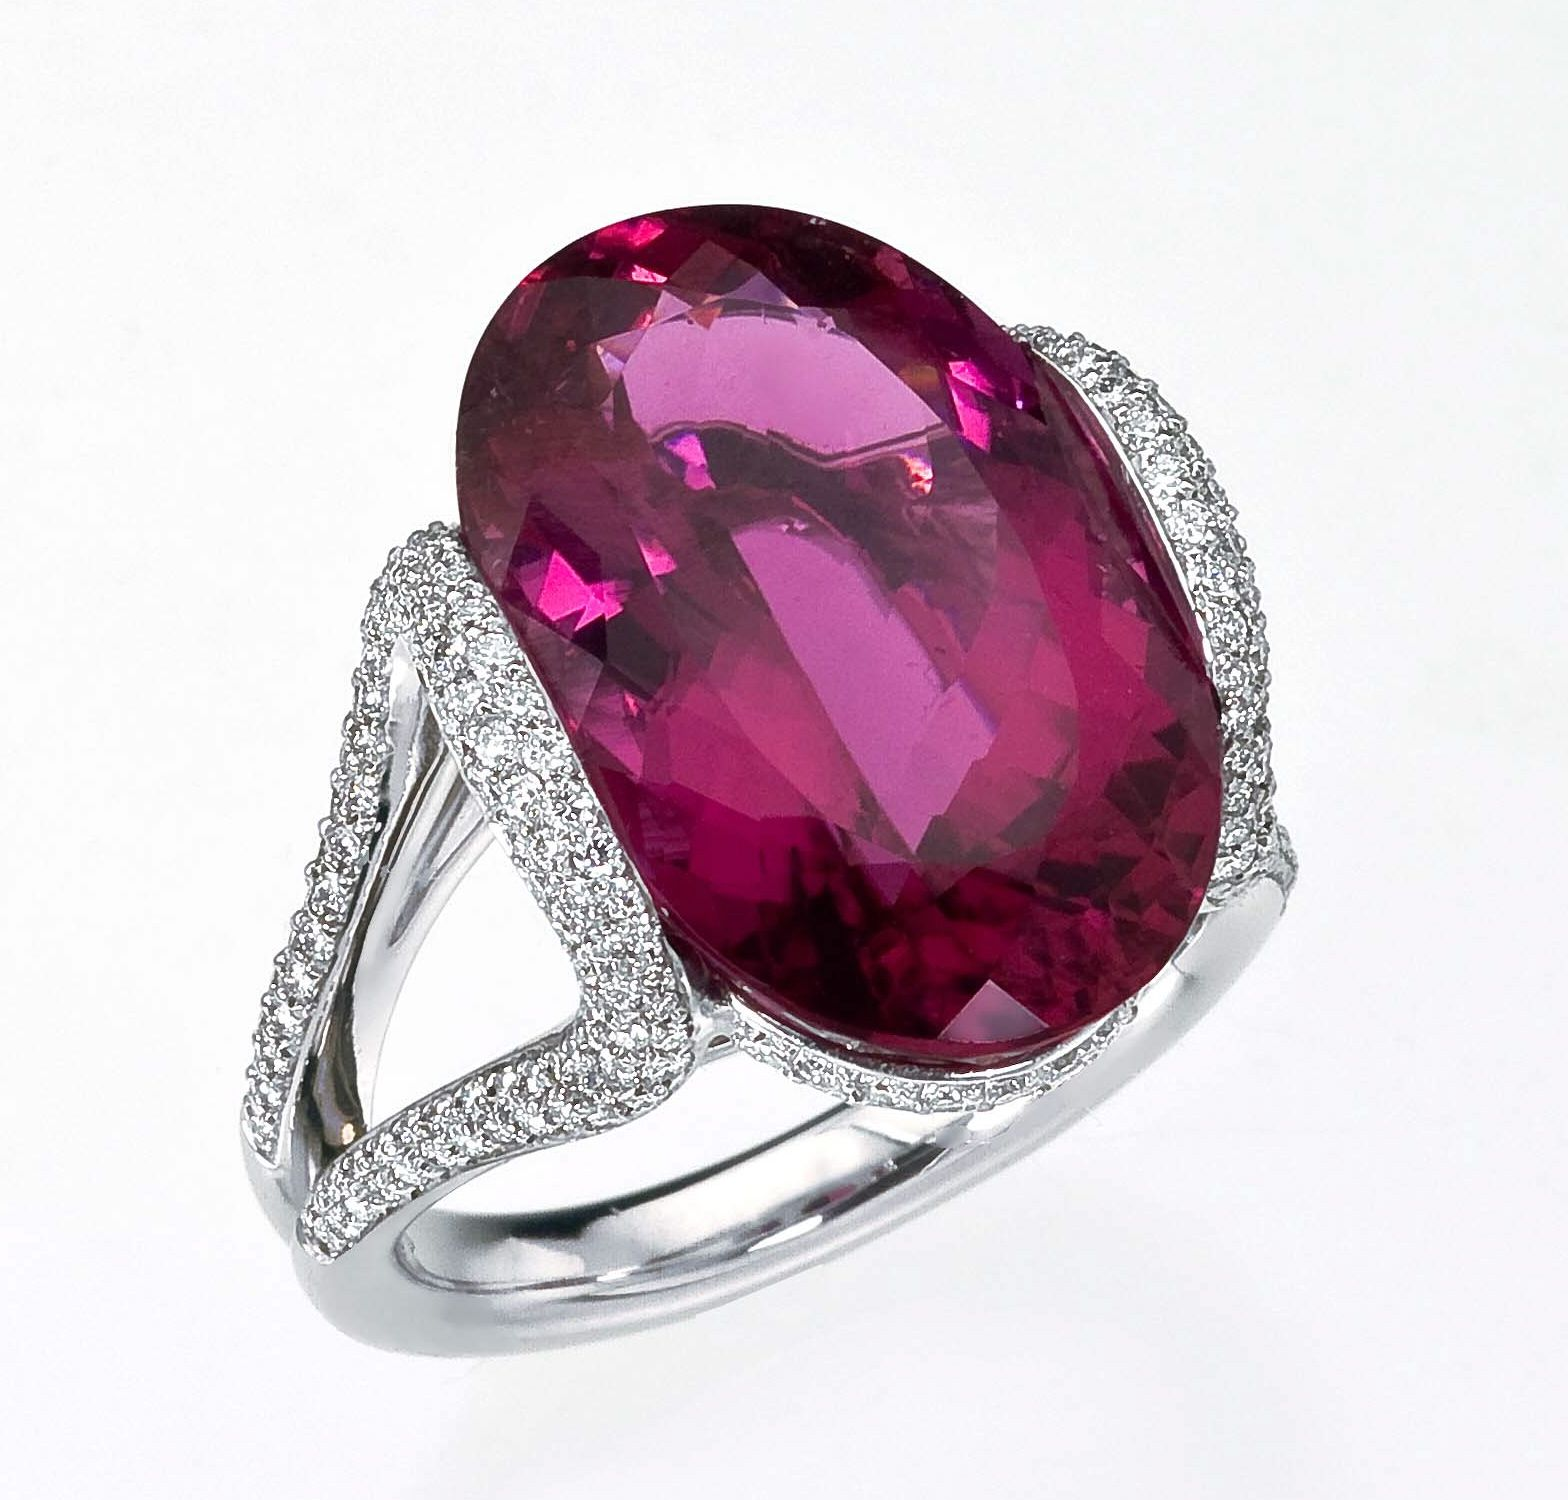 Mark Patterson Rubellite and Diamond Ring.